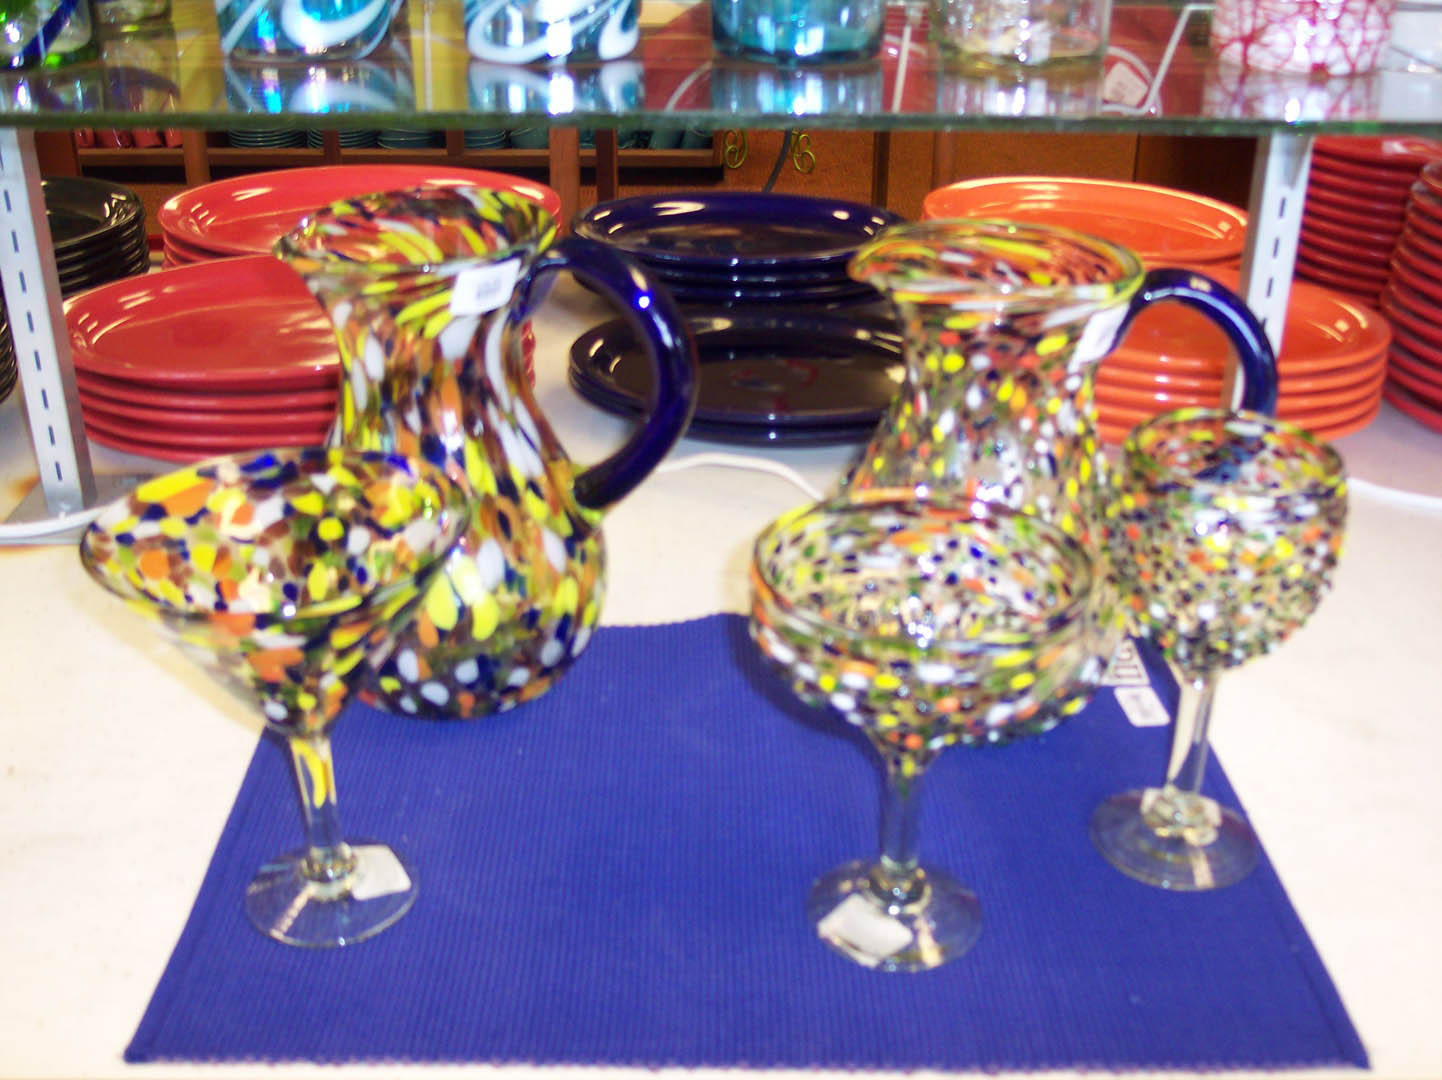 roseville vases prices of zanesville pottery your exclusive pottery retailer with items selling now on ebay a